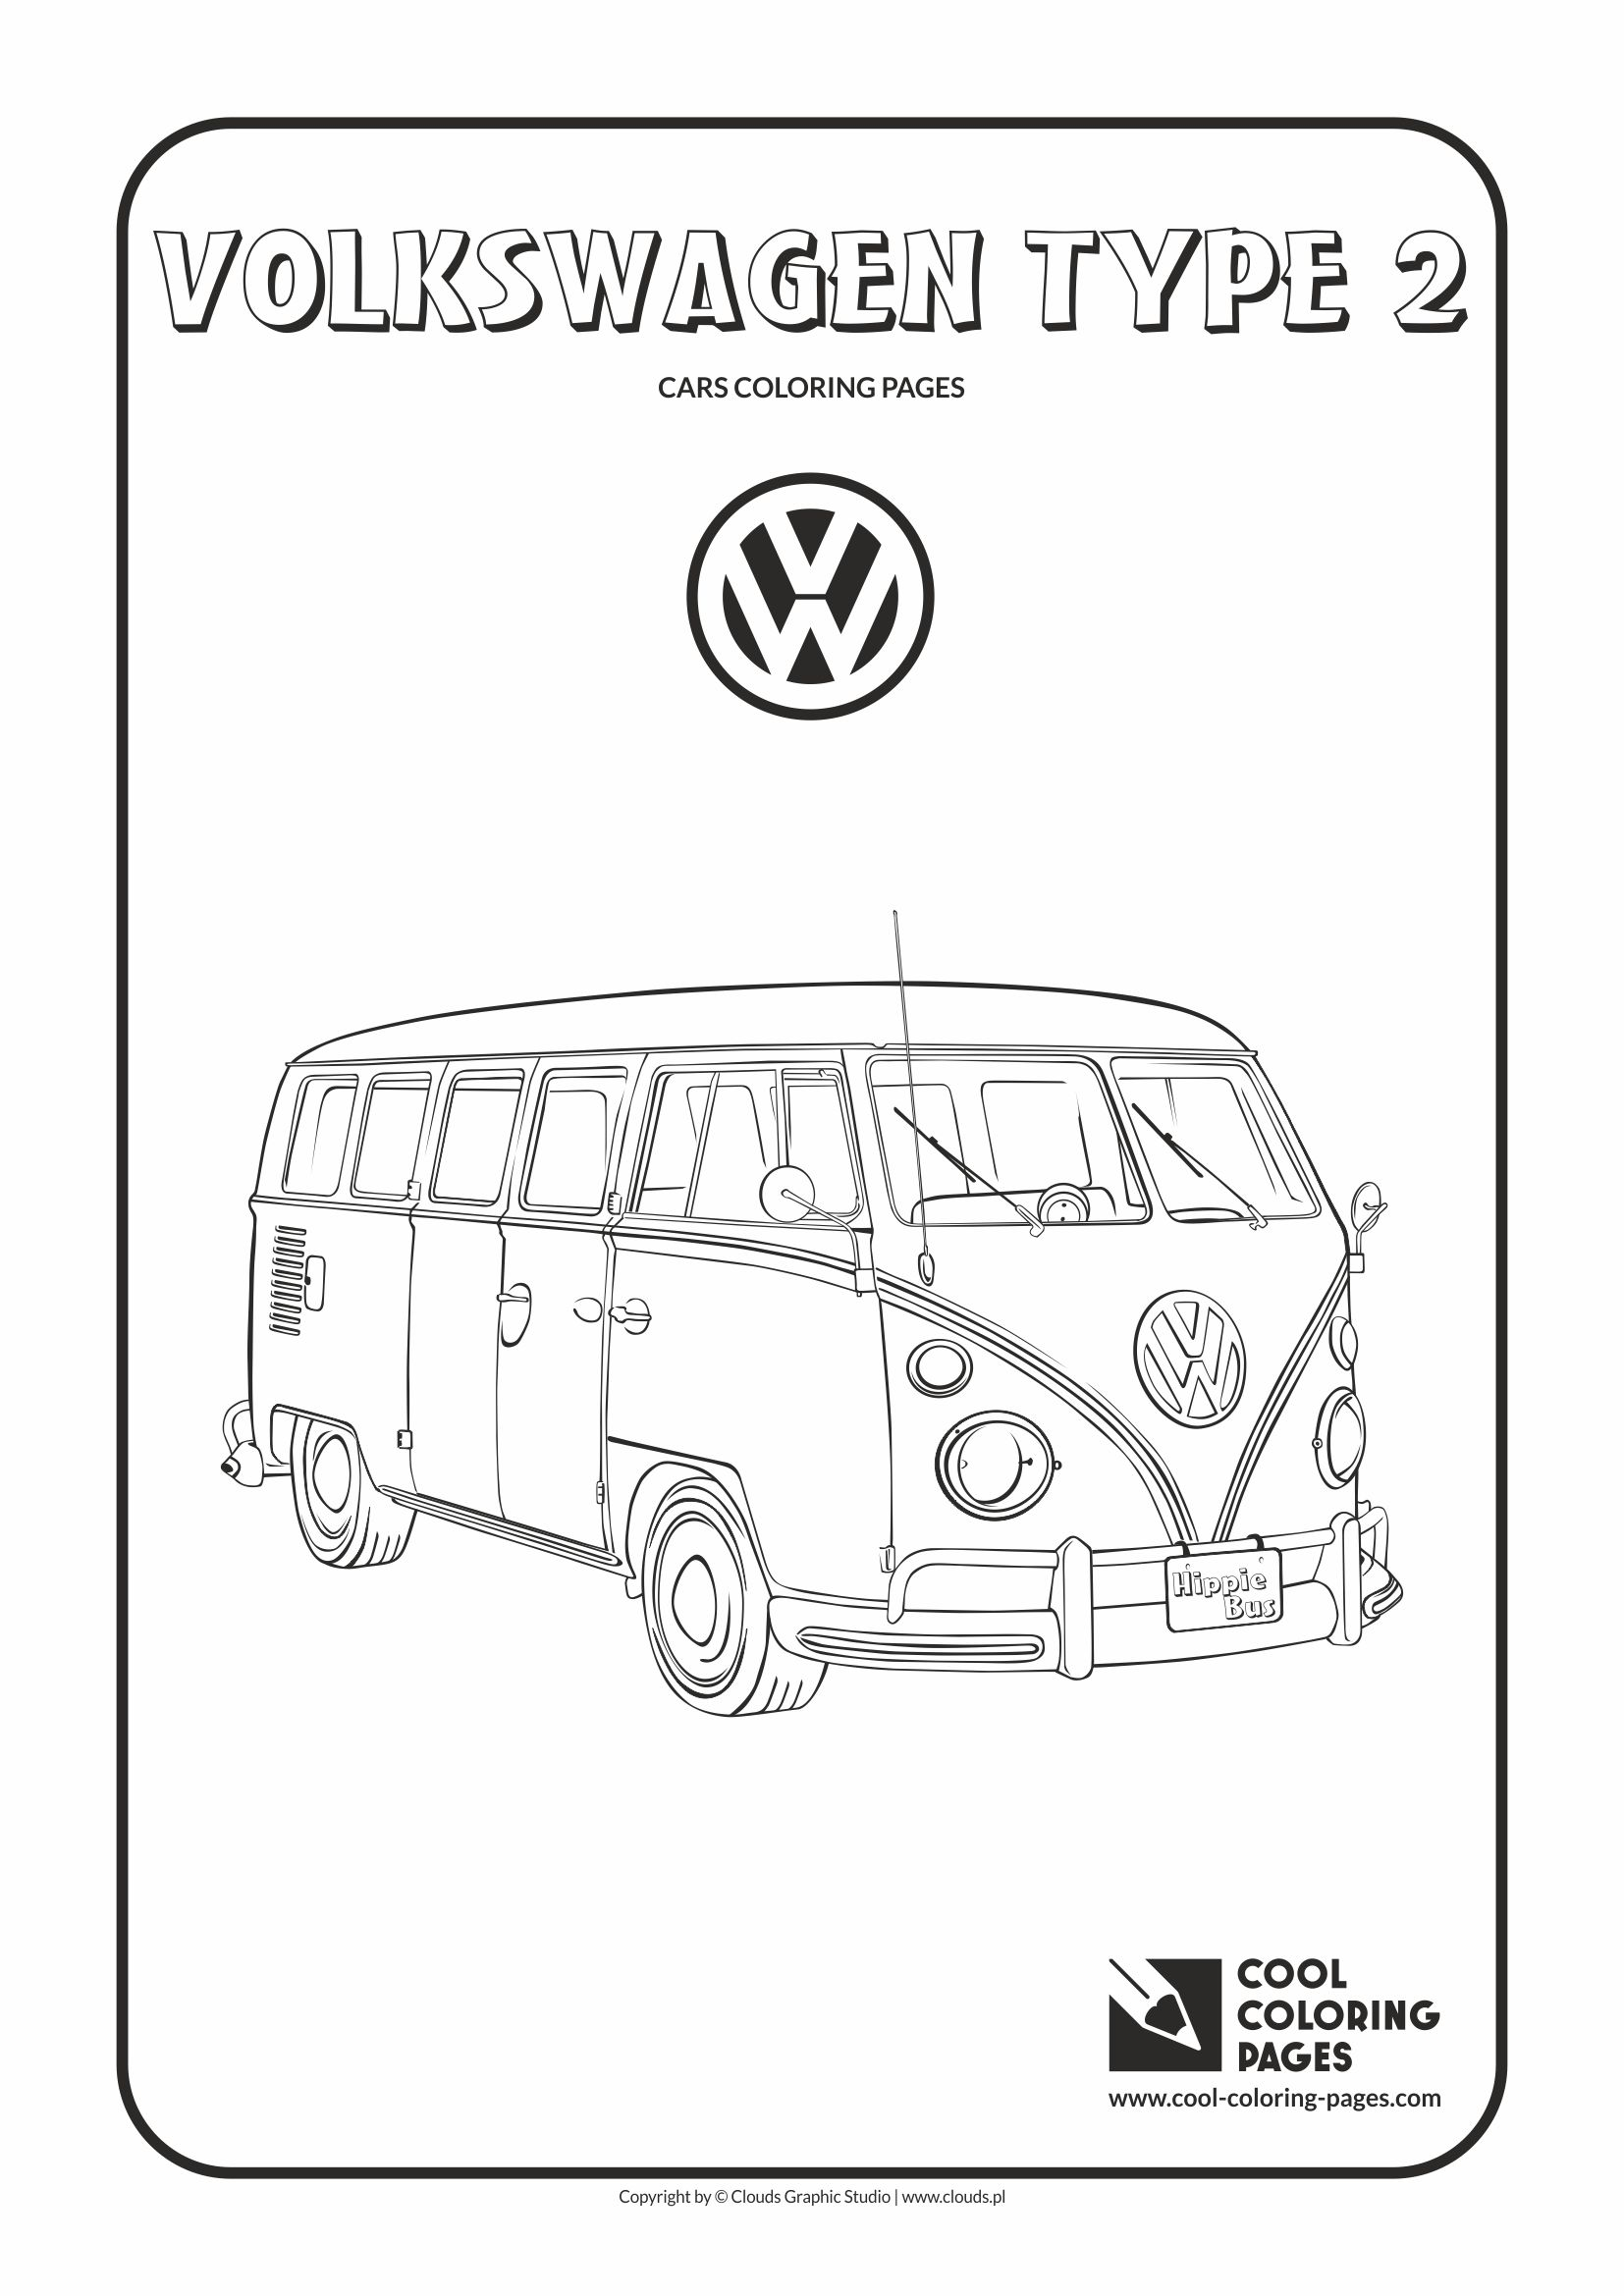 Cool Coloring Pages - Vehicles / Volkswagen type 2 / Coloring page with Volkswagen type 2